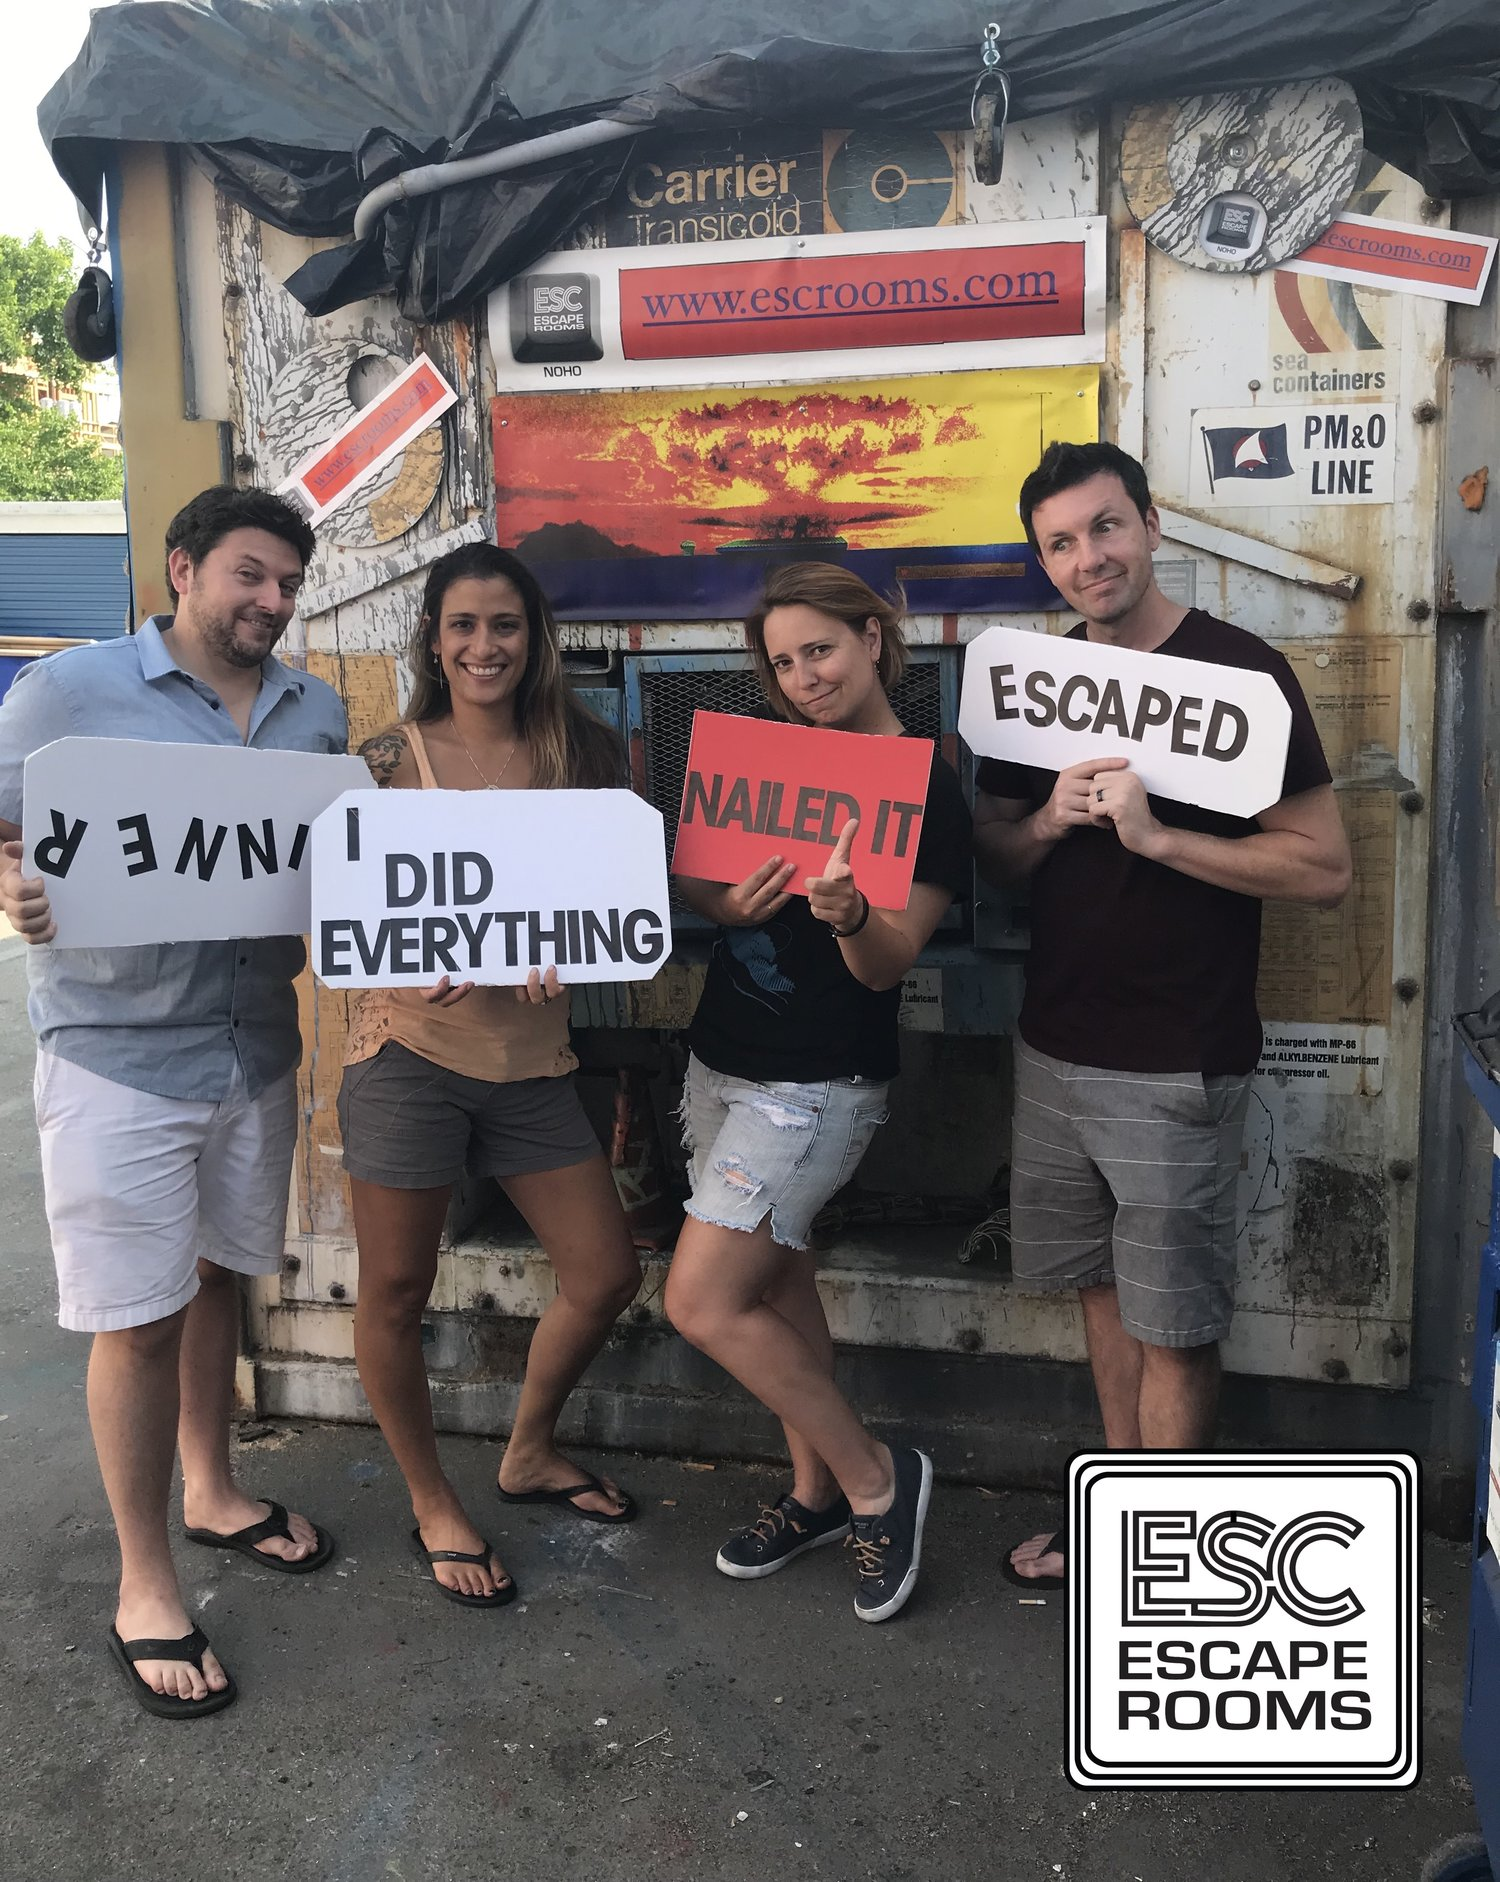 Regal-4-esc-escape-rooms.jpg